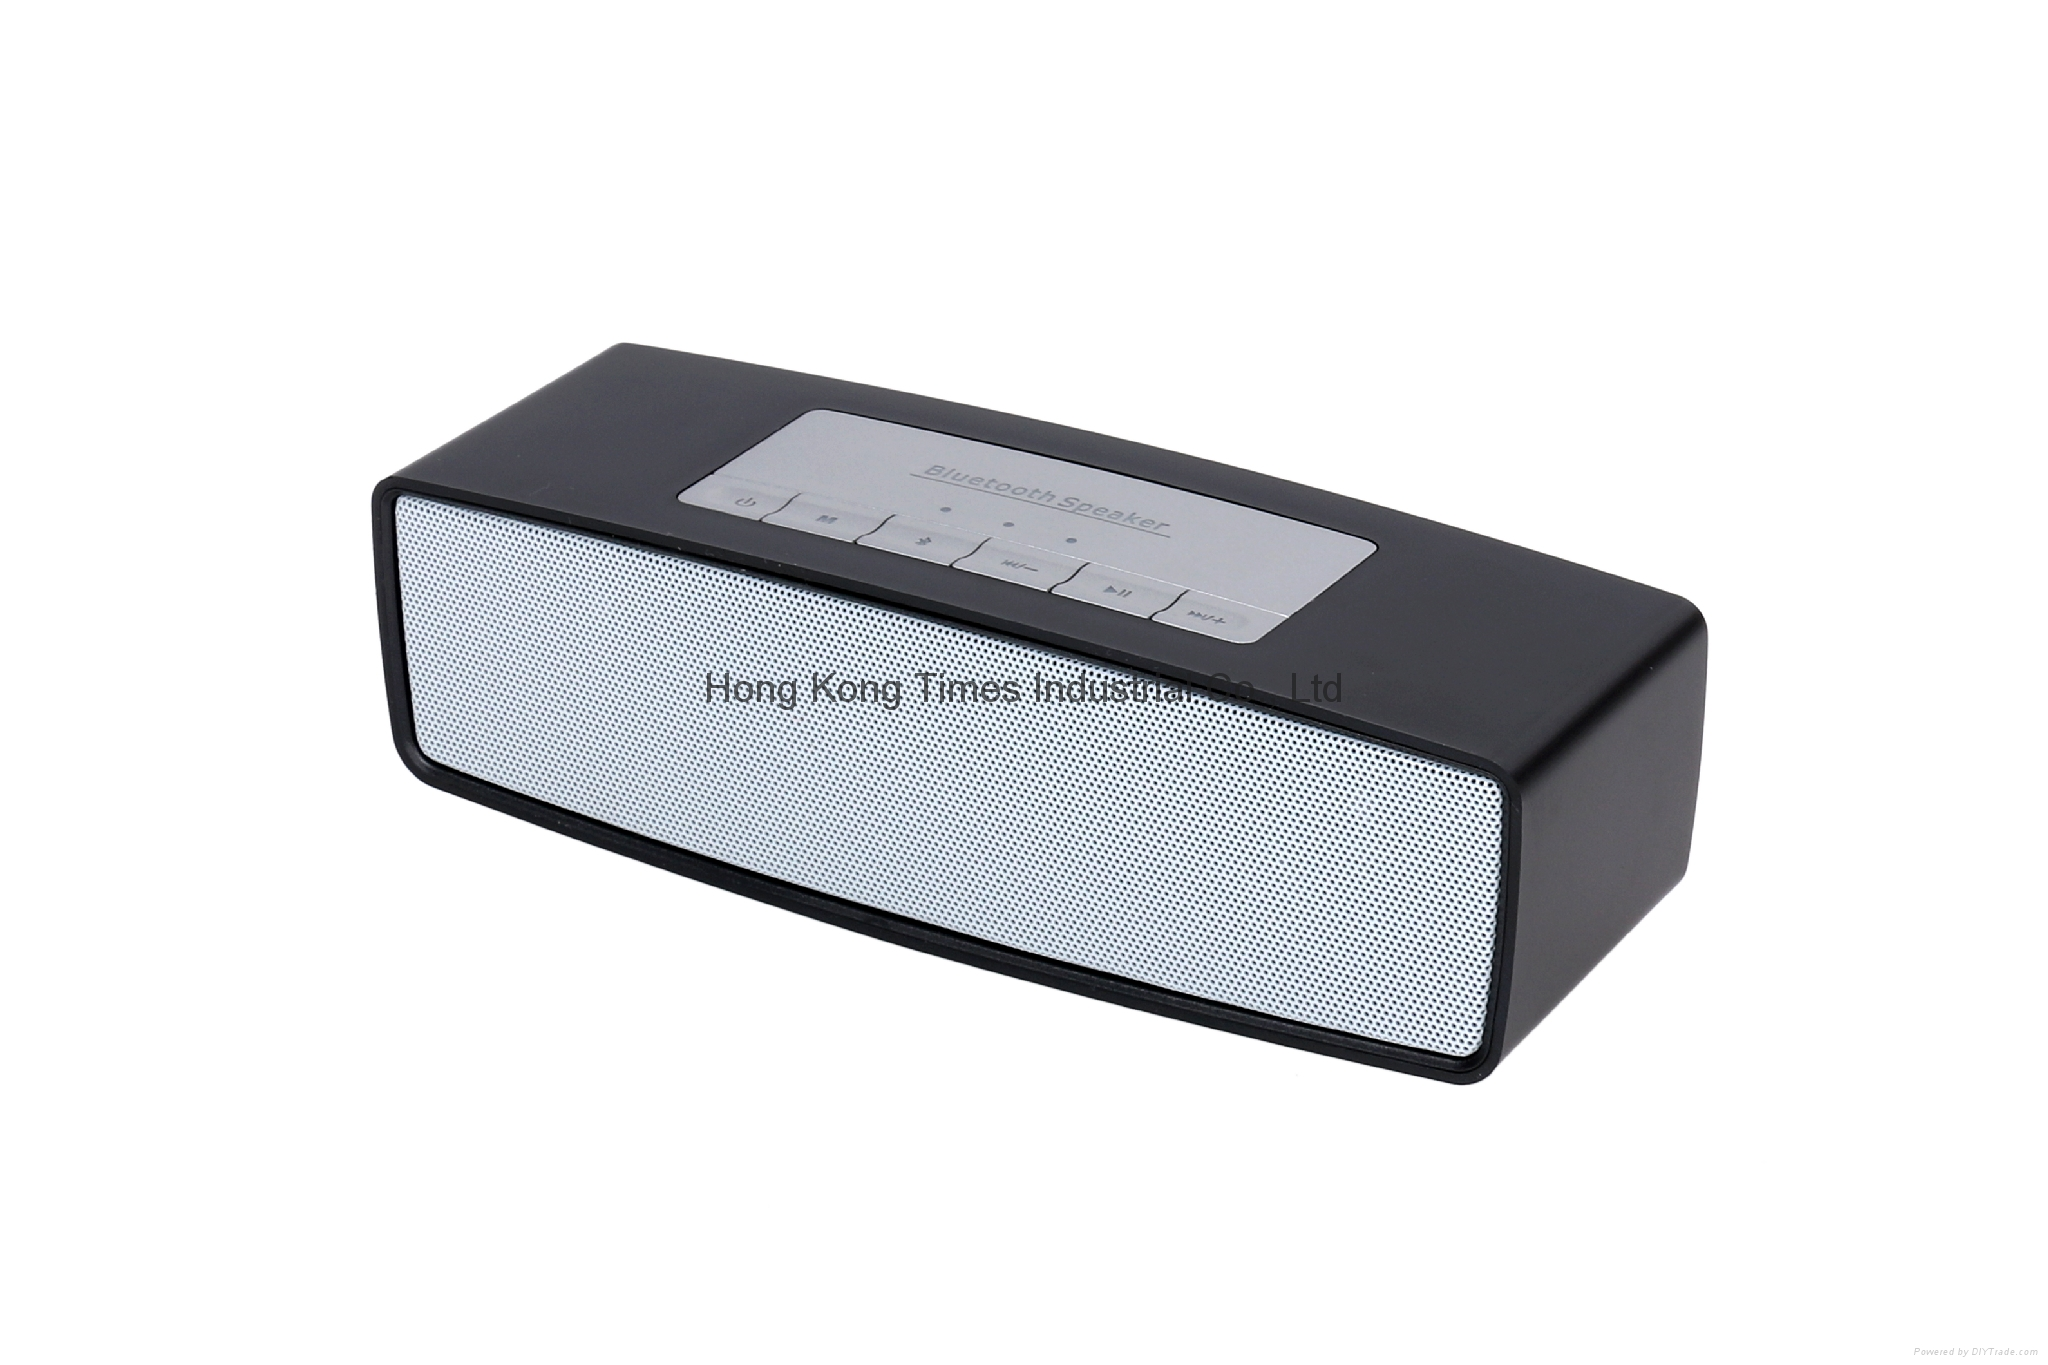 Multimedia Speaker Box, Wireless Bluetooh Speaker for Computer/Mobile Phone, MP3 16